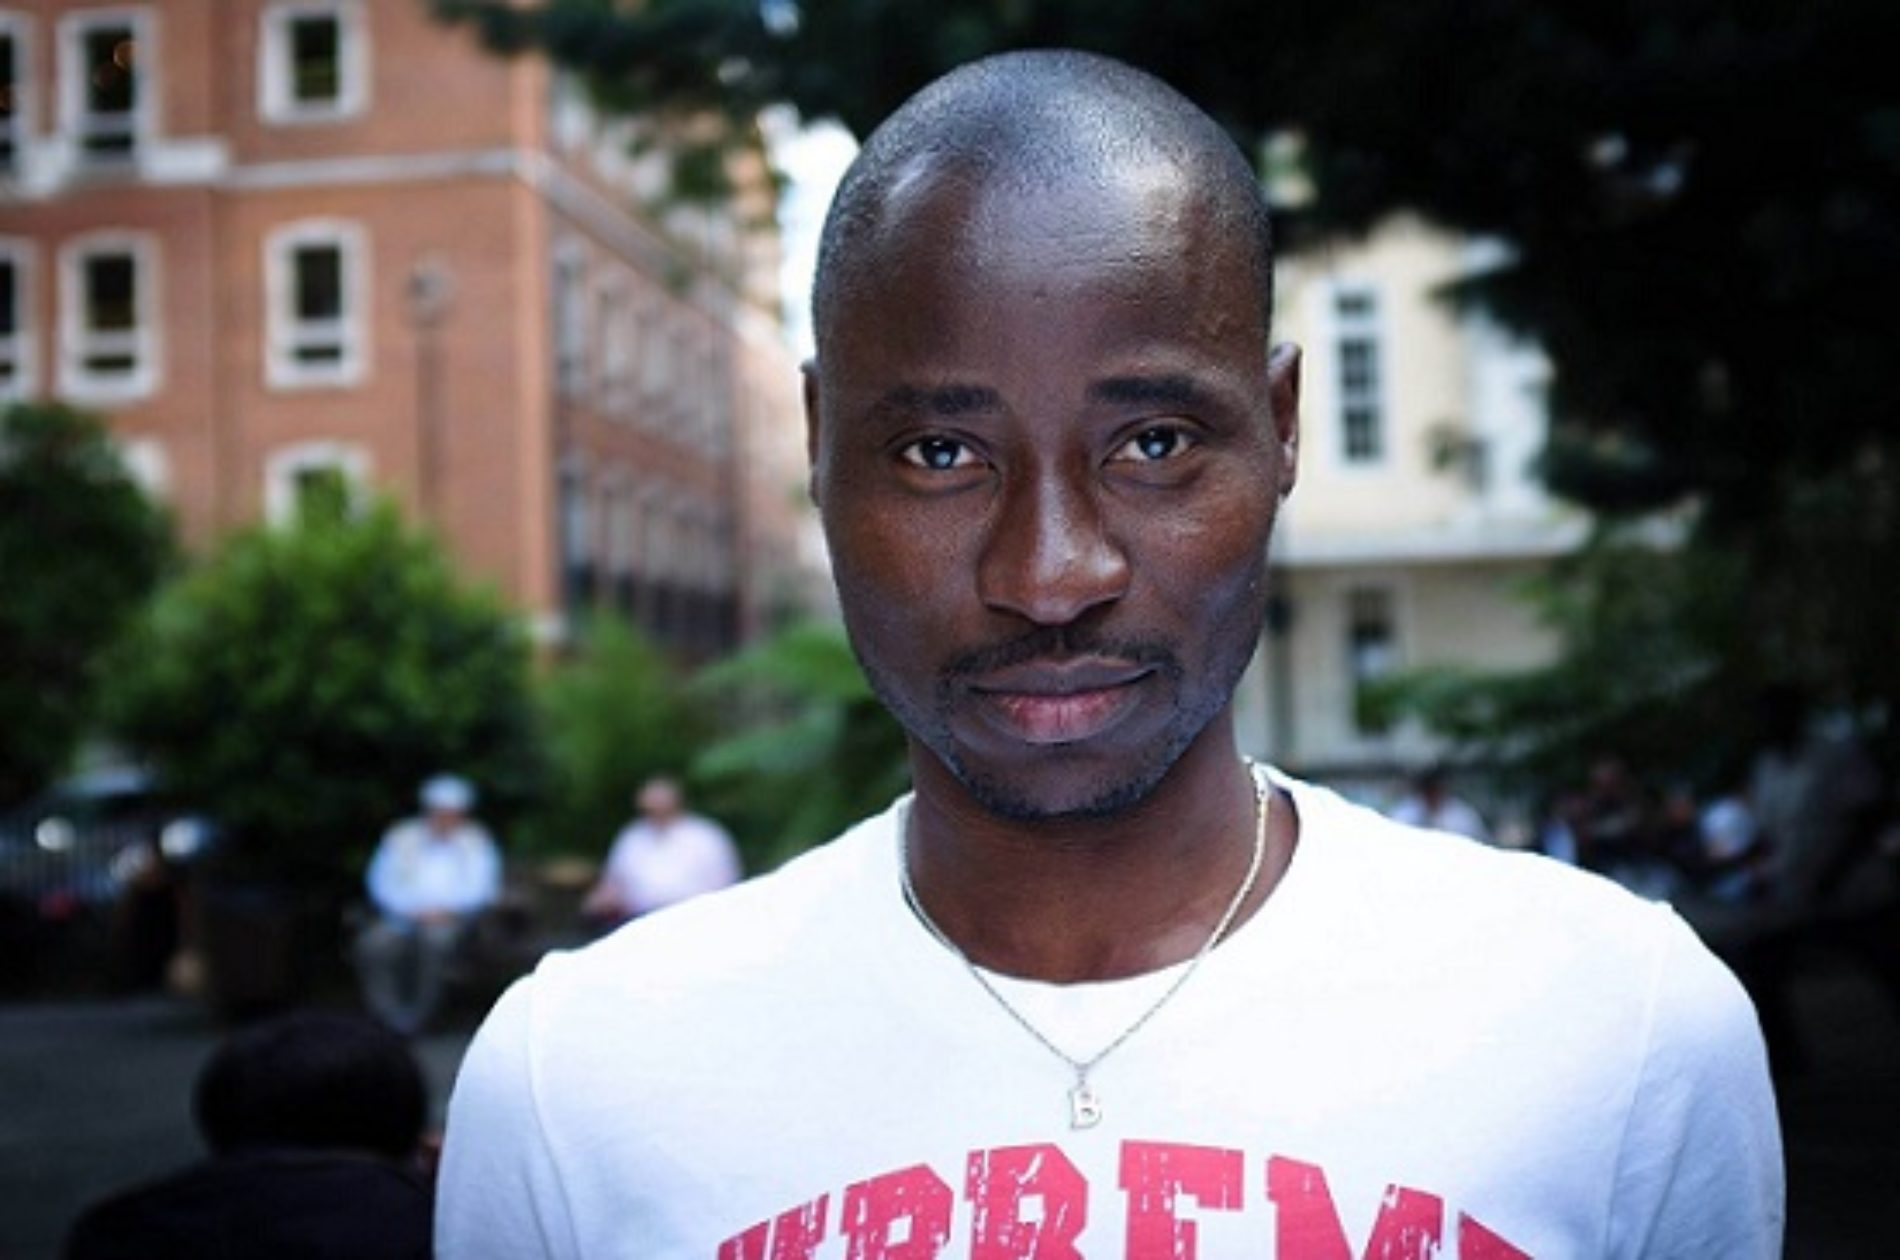 Bisi Alimi Expresses Hope For Nigeria After Drop In Support For Antigay Law